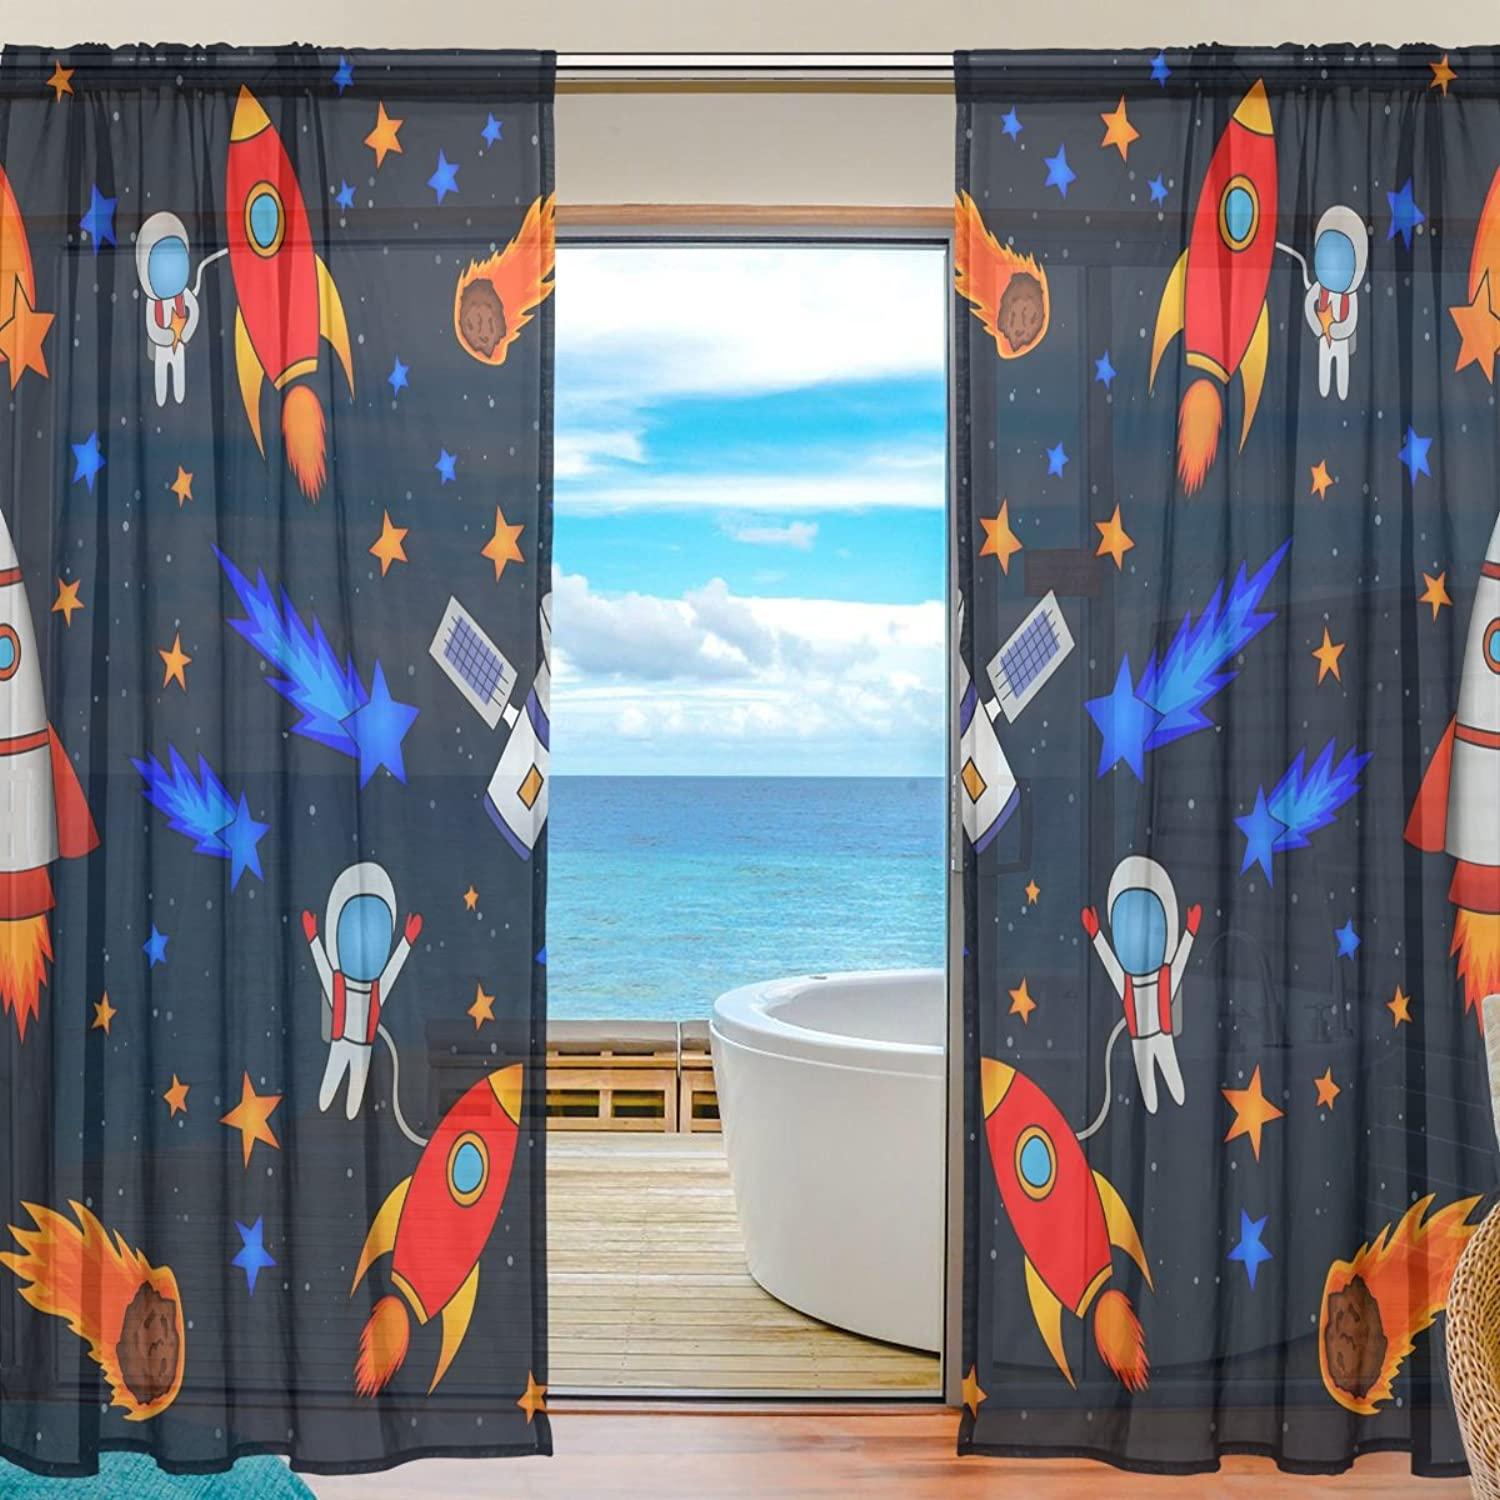 Vantaso Sheer Curtains 78 inch Long Space Planets Stars Spaceman Astronaut for Kids Girls Bedroom Living Room Window Decorative 2 Panels